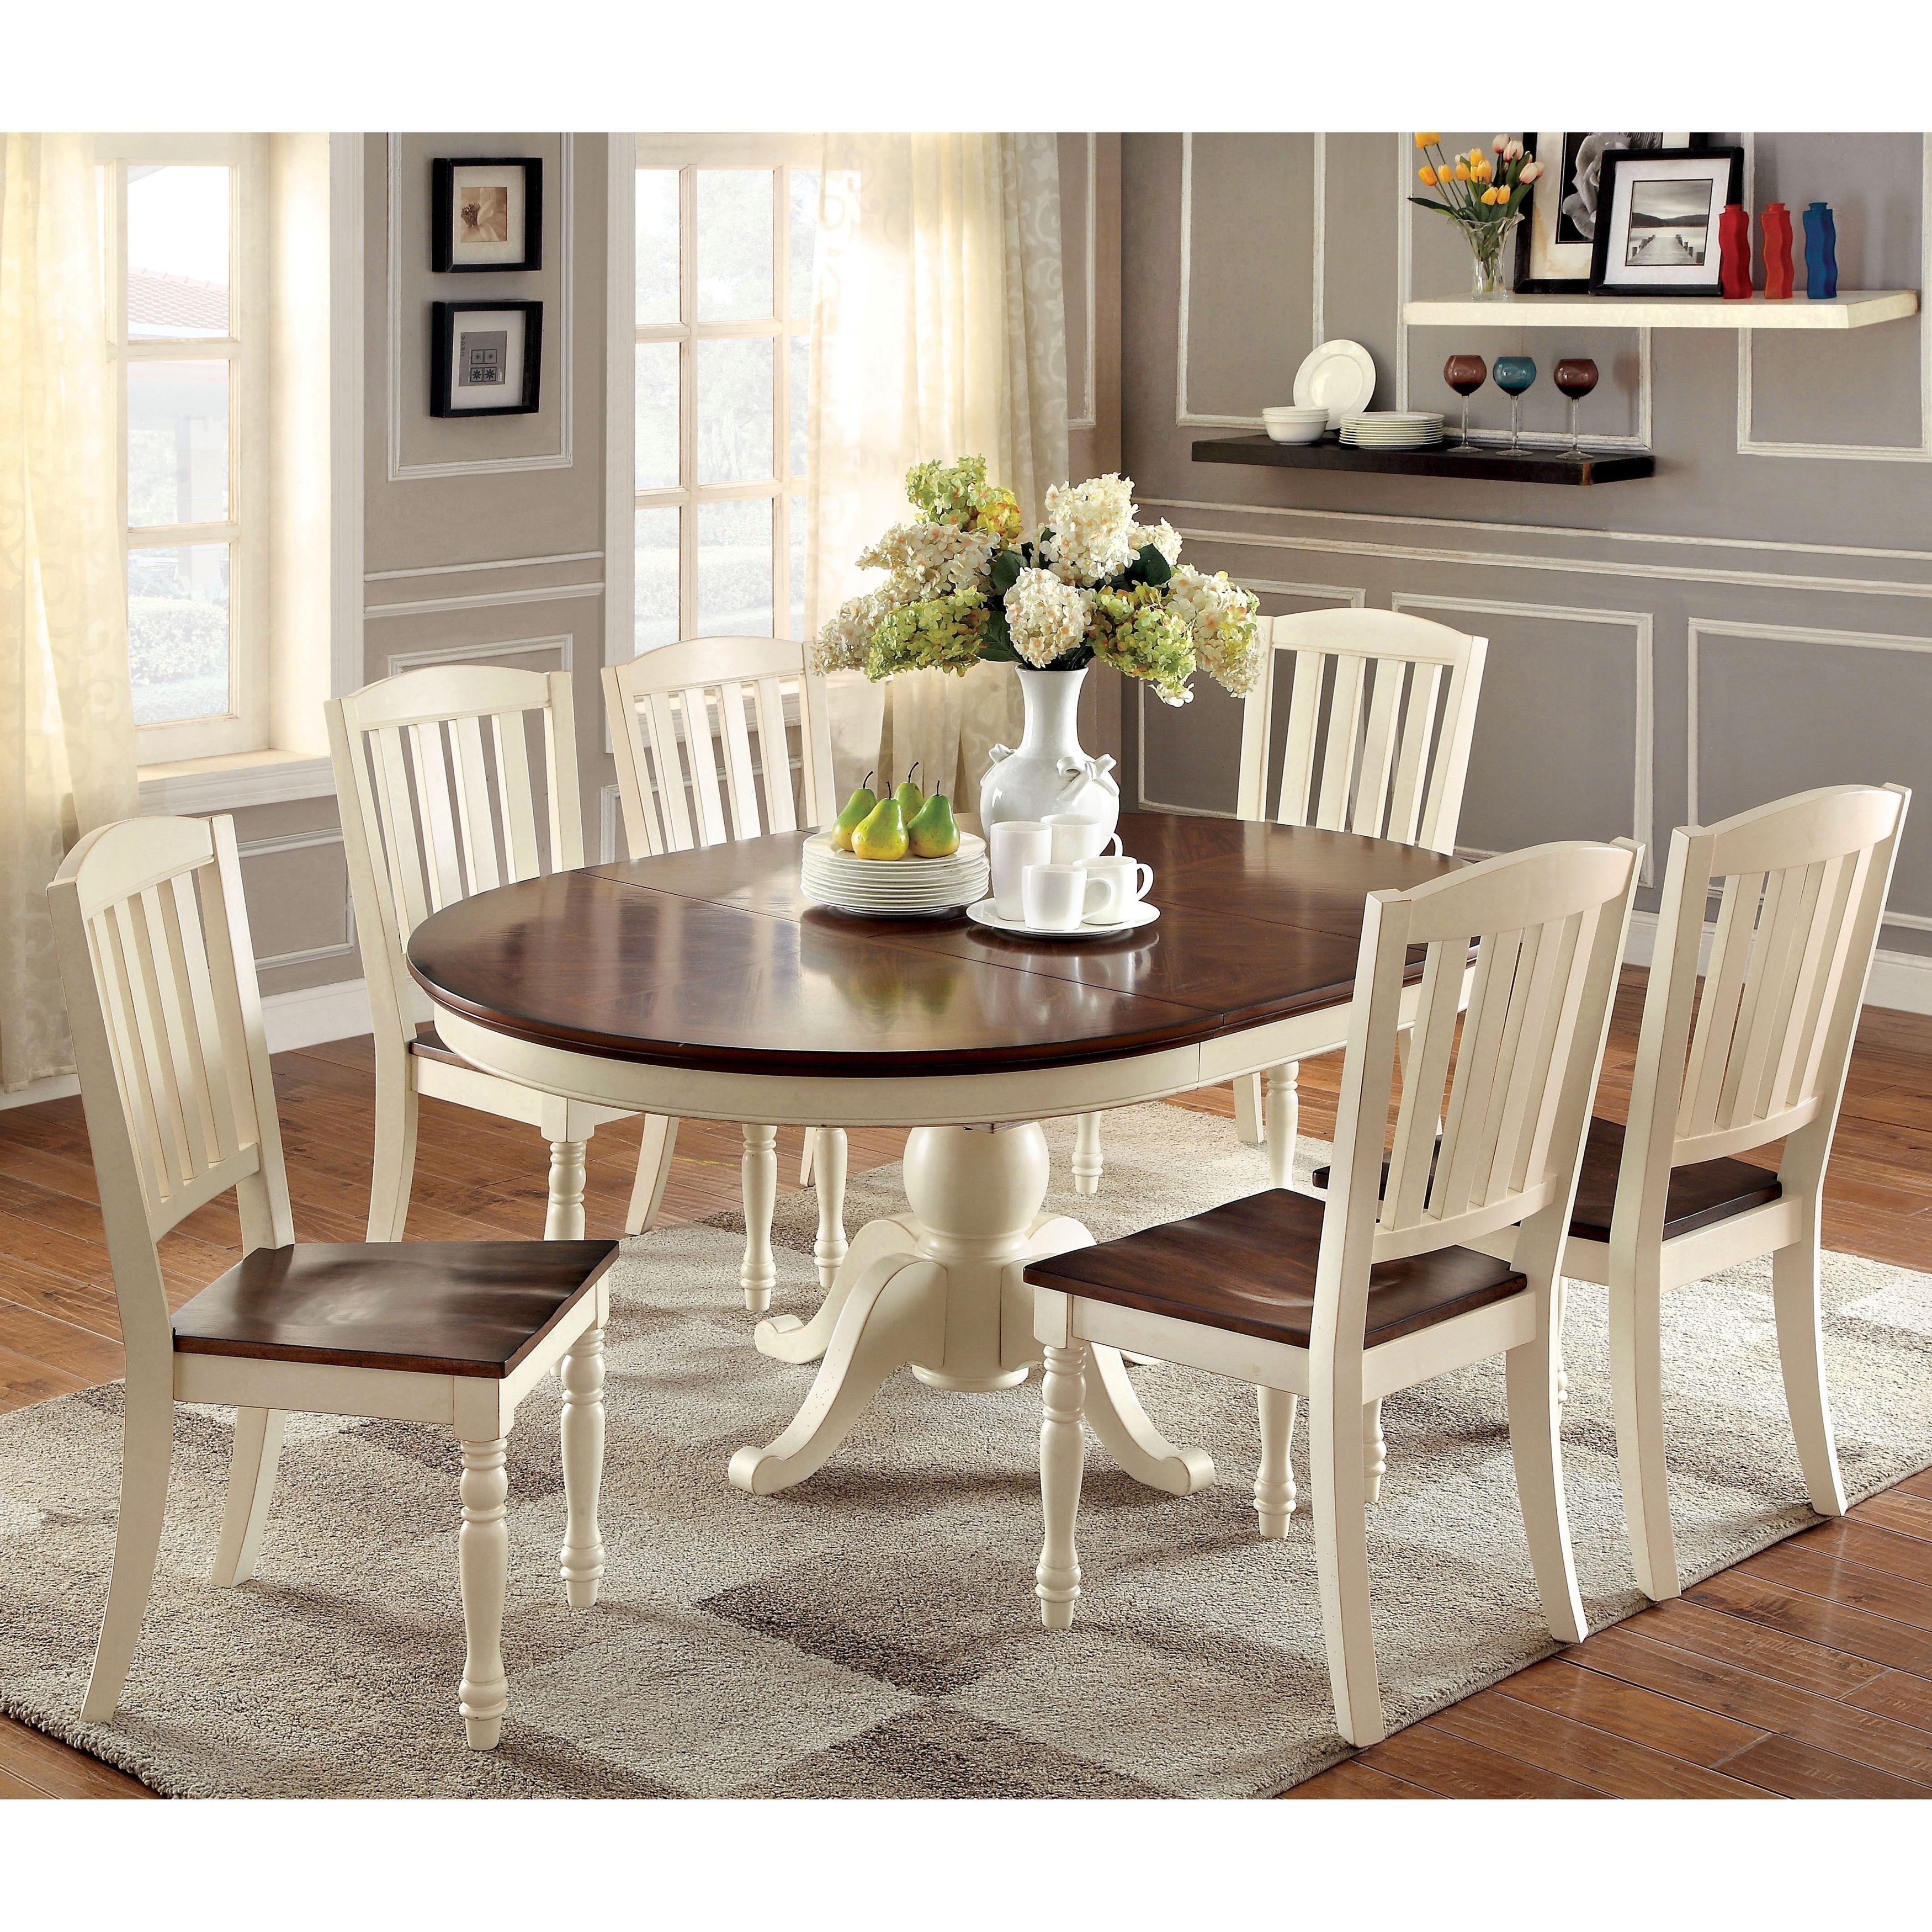 Furniture Of America Bethannie 7 Piece Cottage Style Oval Dining Set Within Most Recent Craftsman 5 Piece Round Dining Sets With Uph Side Chairs (View 17 of 25)